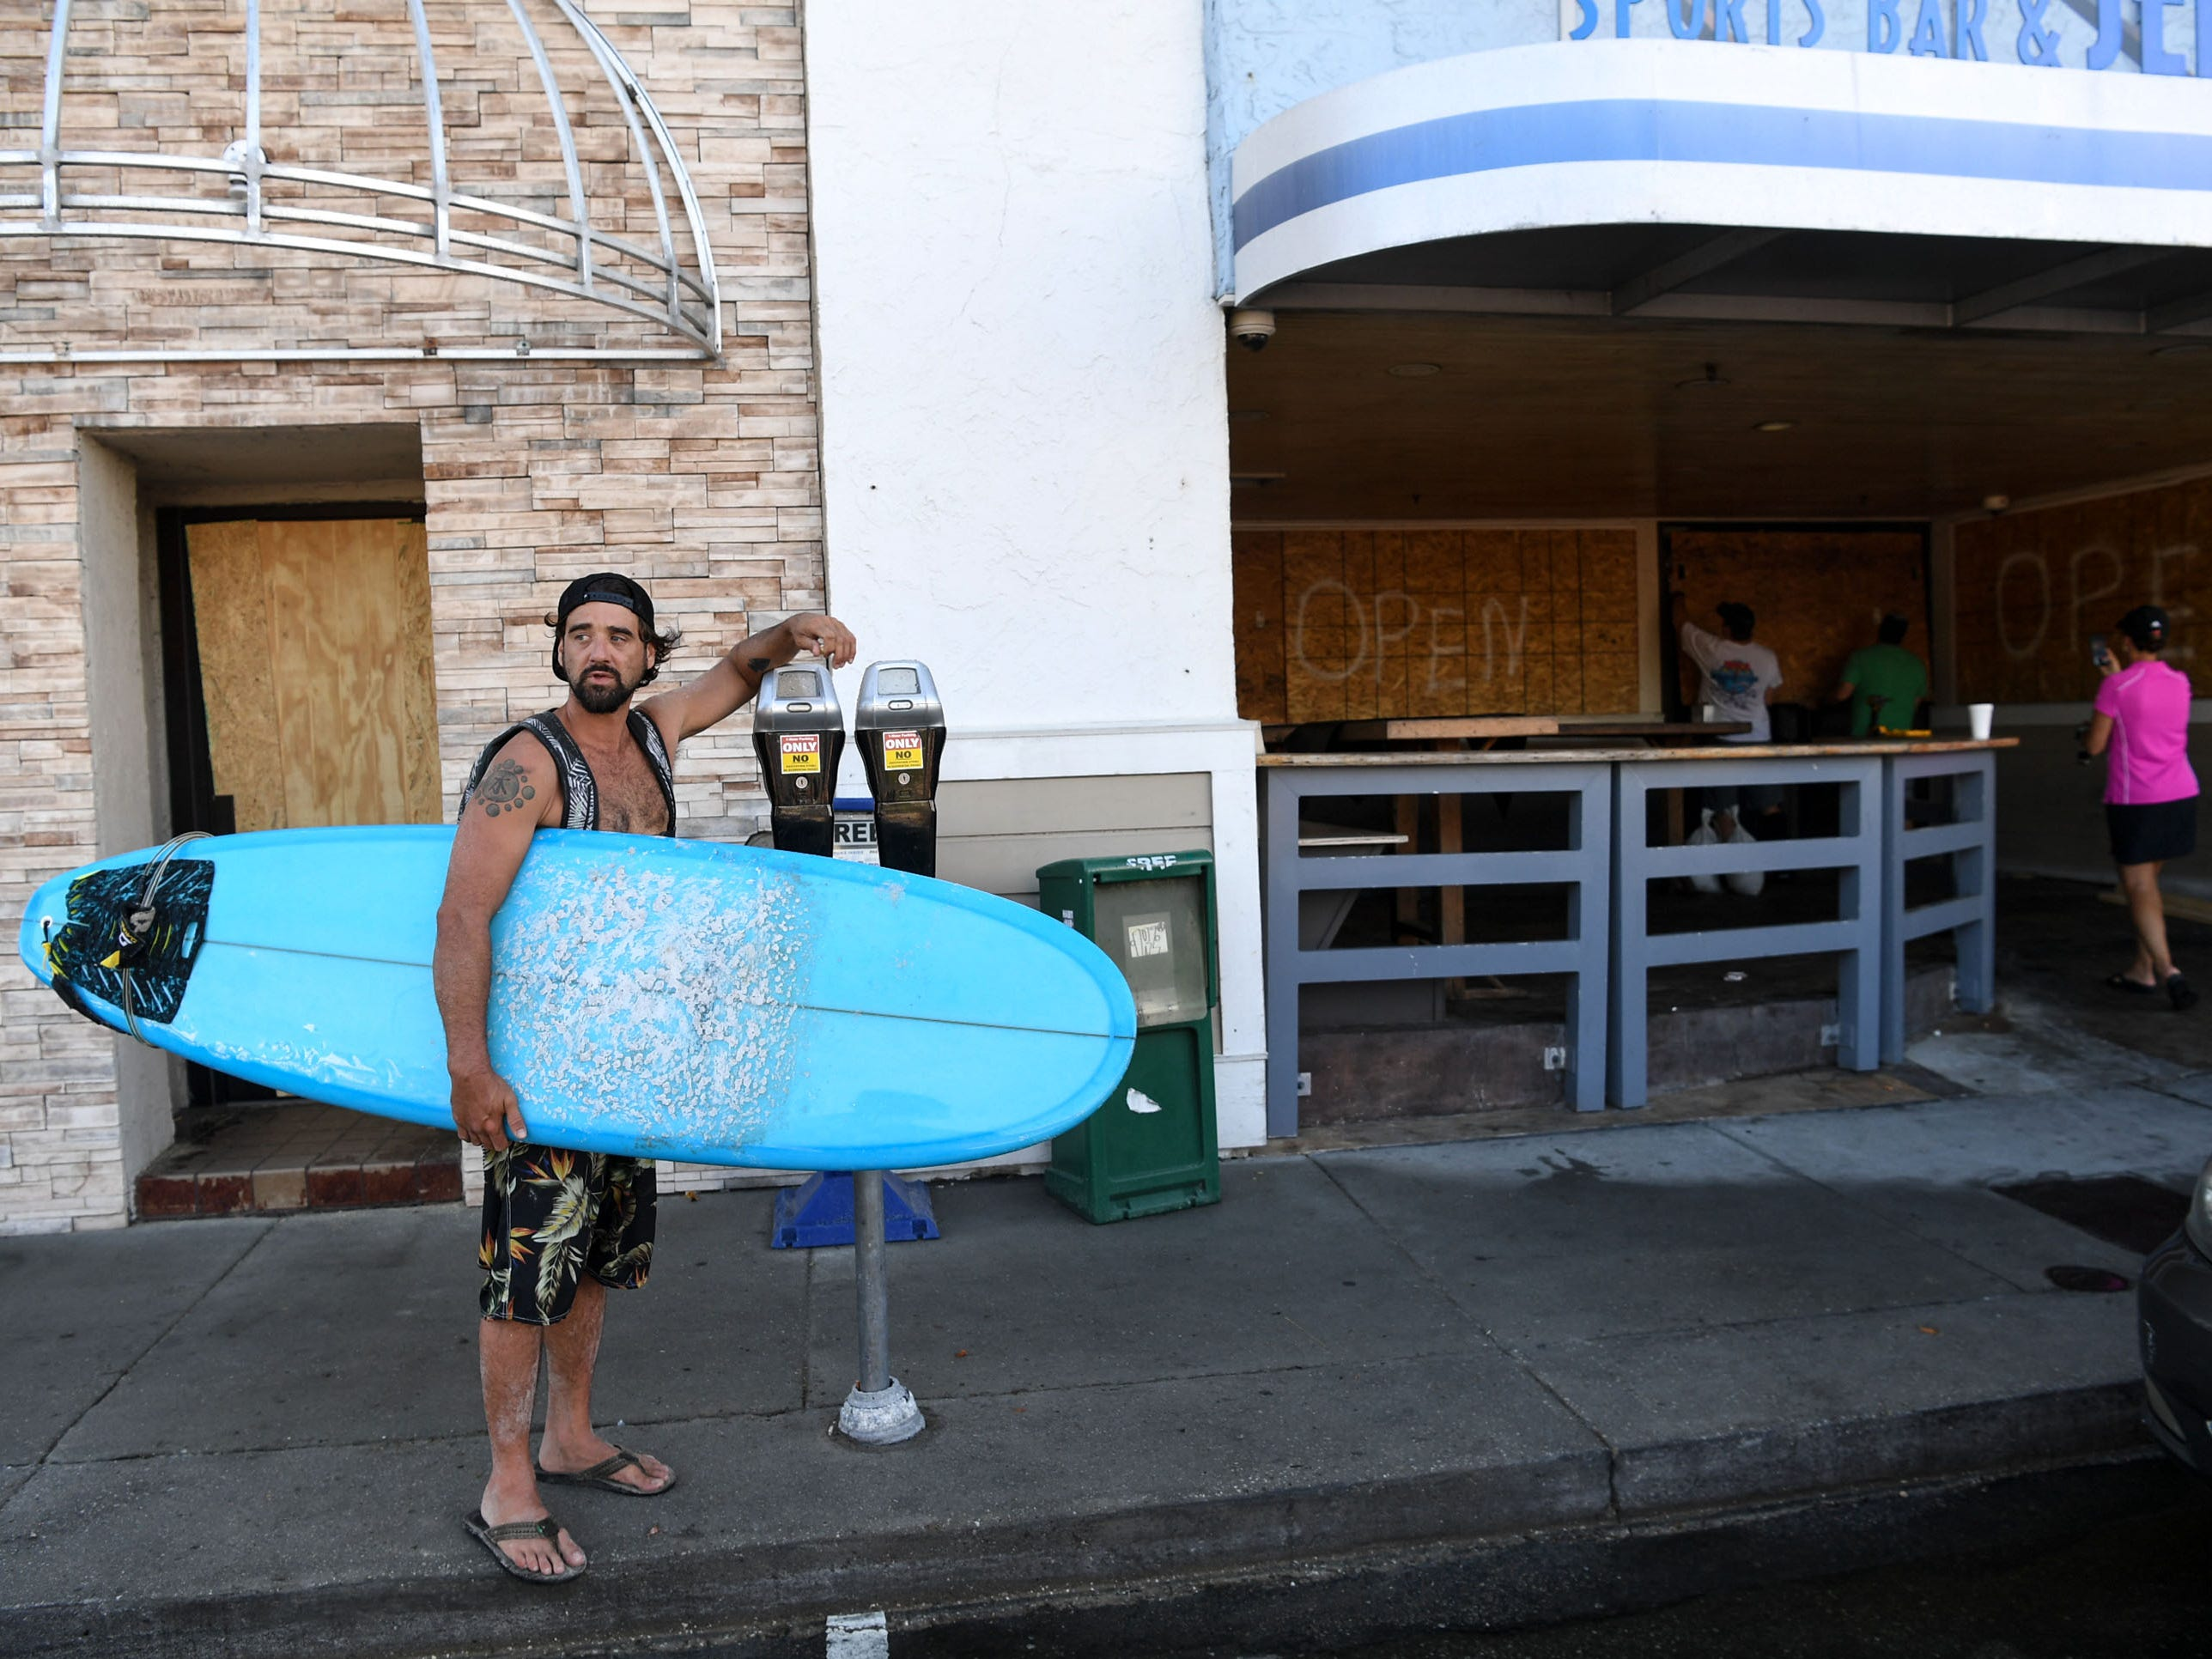 James Waters of Wilmington, N.C., finishes surfing and stopped by to see his friends boarding up Jerry Allen's Grill at Wrightsville Beach in Wilmington, N.C., Sept. 12, 2018.